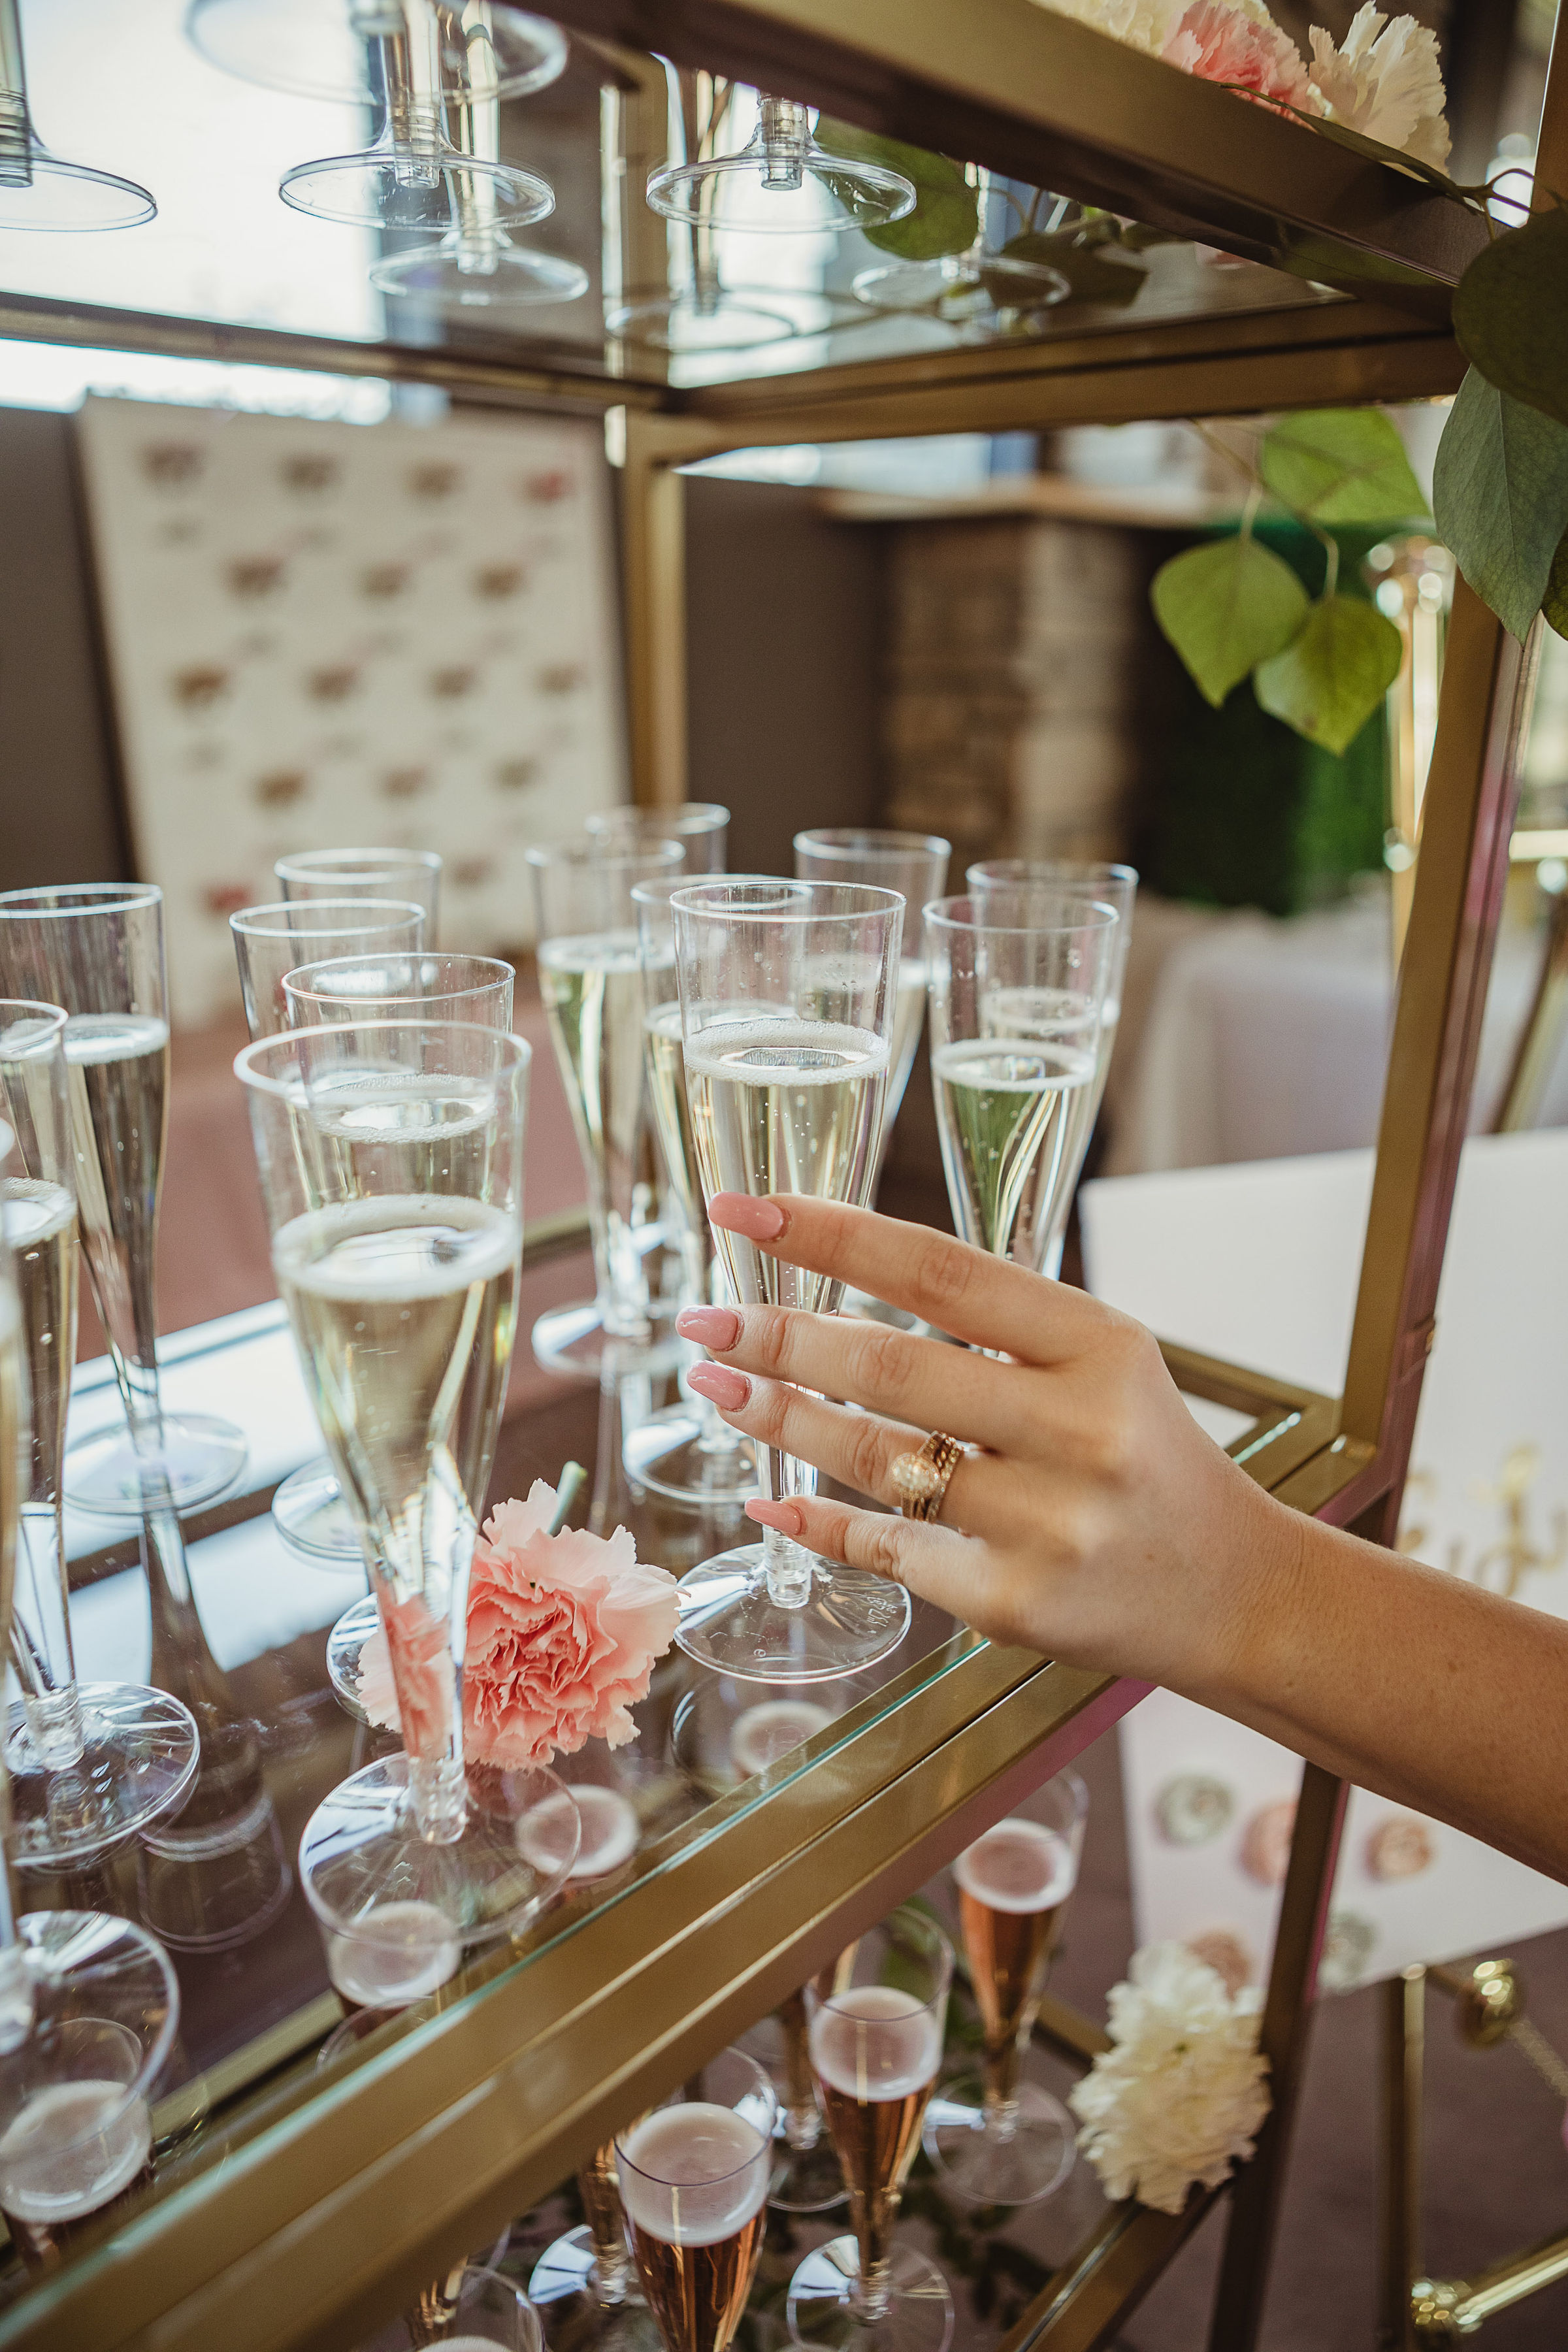 She's-Been-Scooped-Up-Bridal-Shower-Event-Prep-Cassandra-Clair-Love-is-Greater-Photography-2.jpg